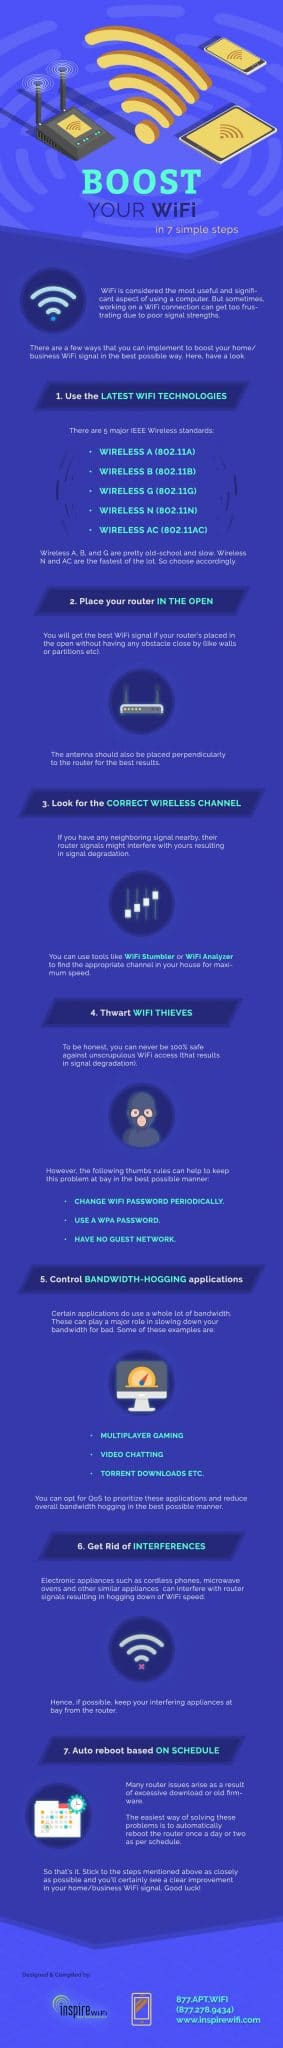 Infographic how to improve WiFi signal at home